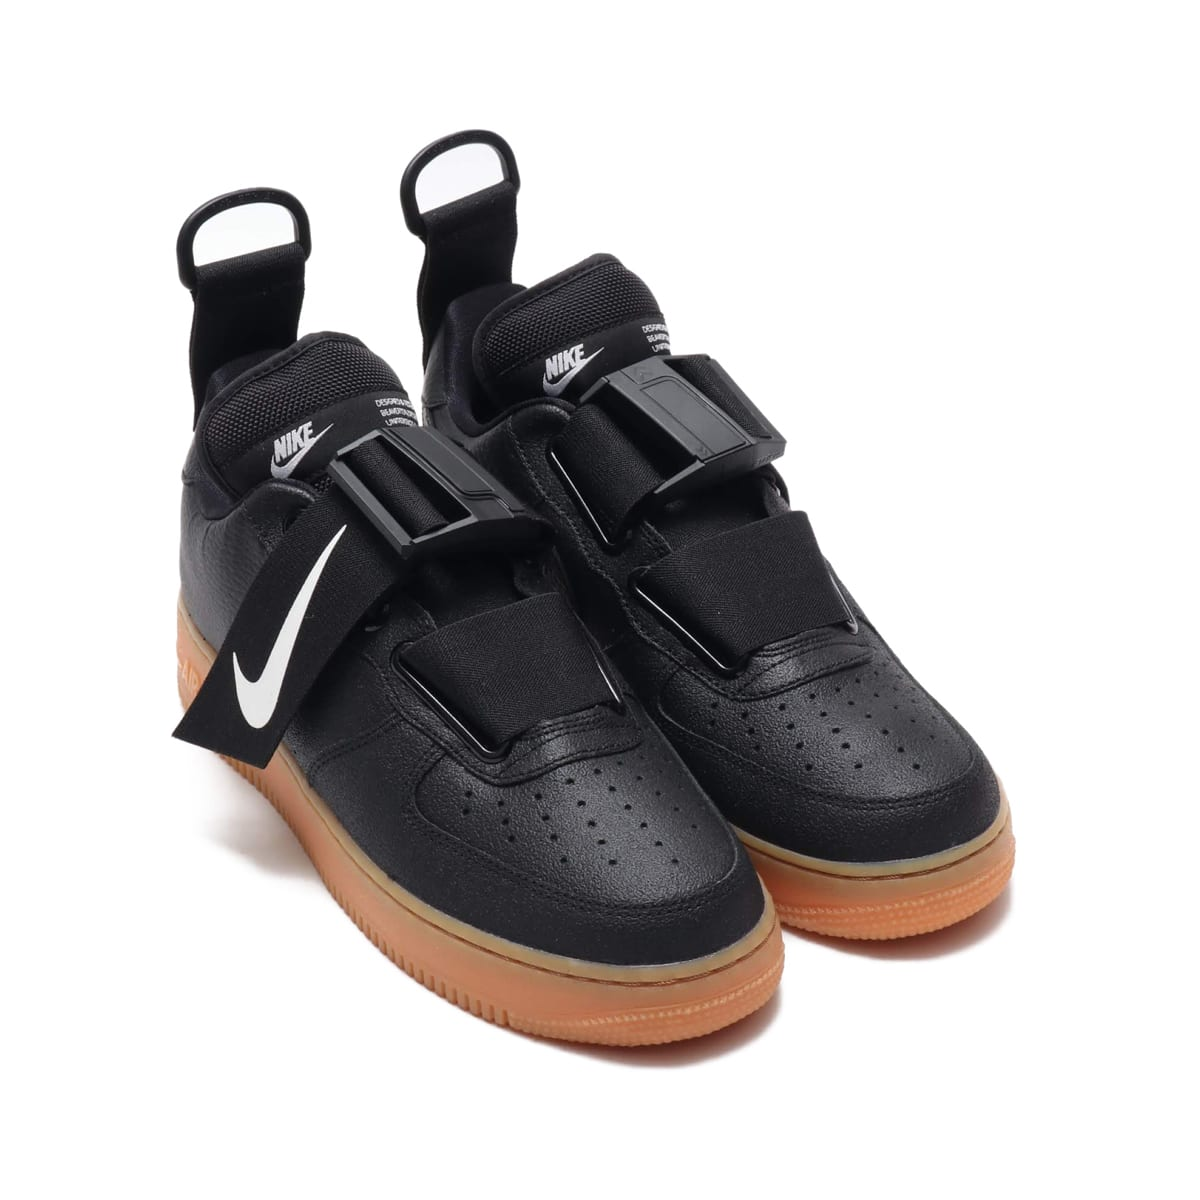 NIKE AIR FORCE 1 UTILITY  BLACK/WHITE-GUM MED BROWN 18HO-I_photo_large